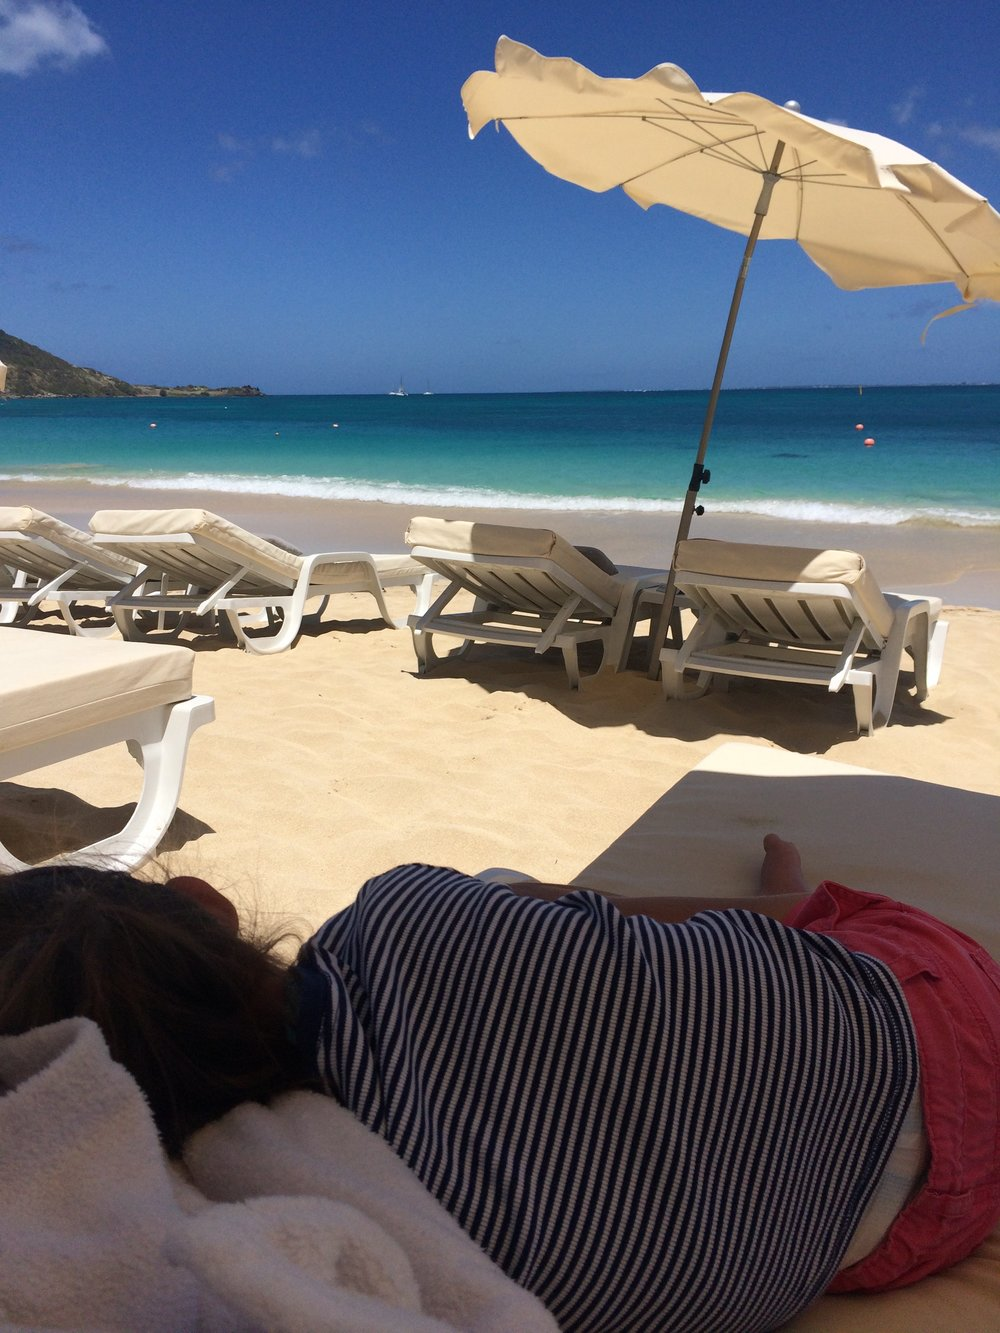 grand case: napping in paradise